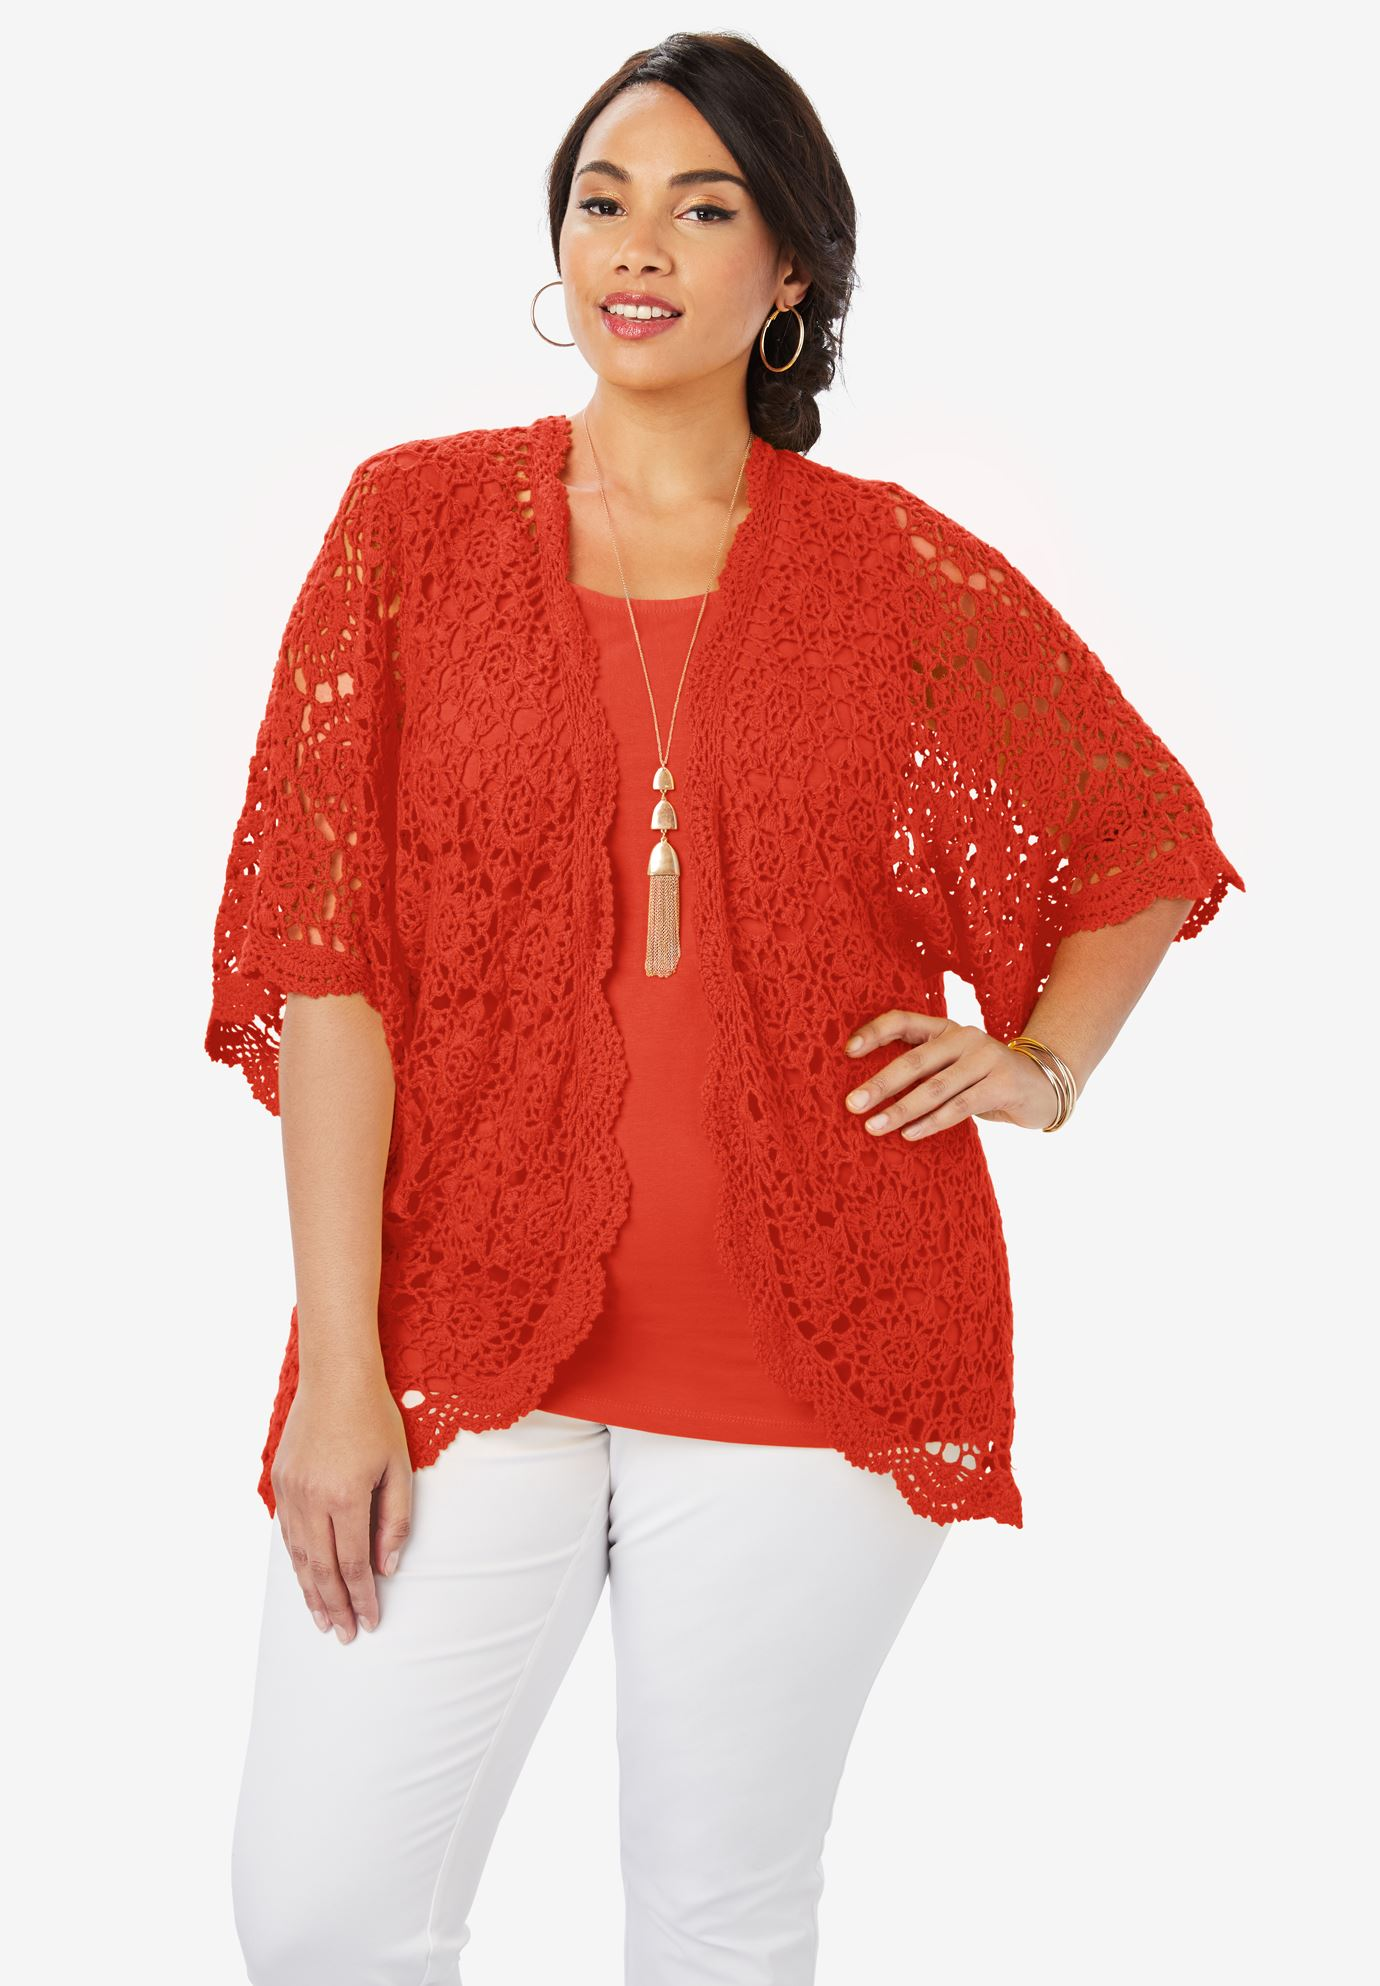 Crochet Cardigan Sweater Plus Size Cardigans Roamans